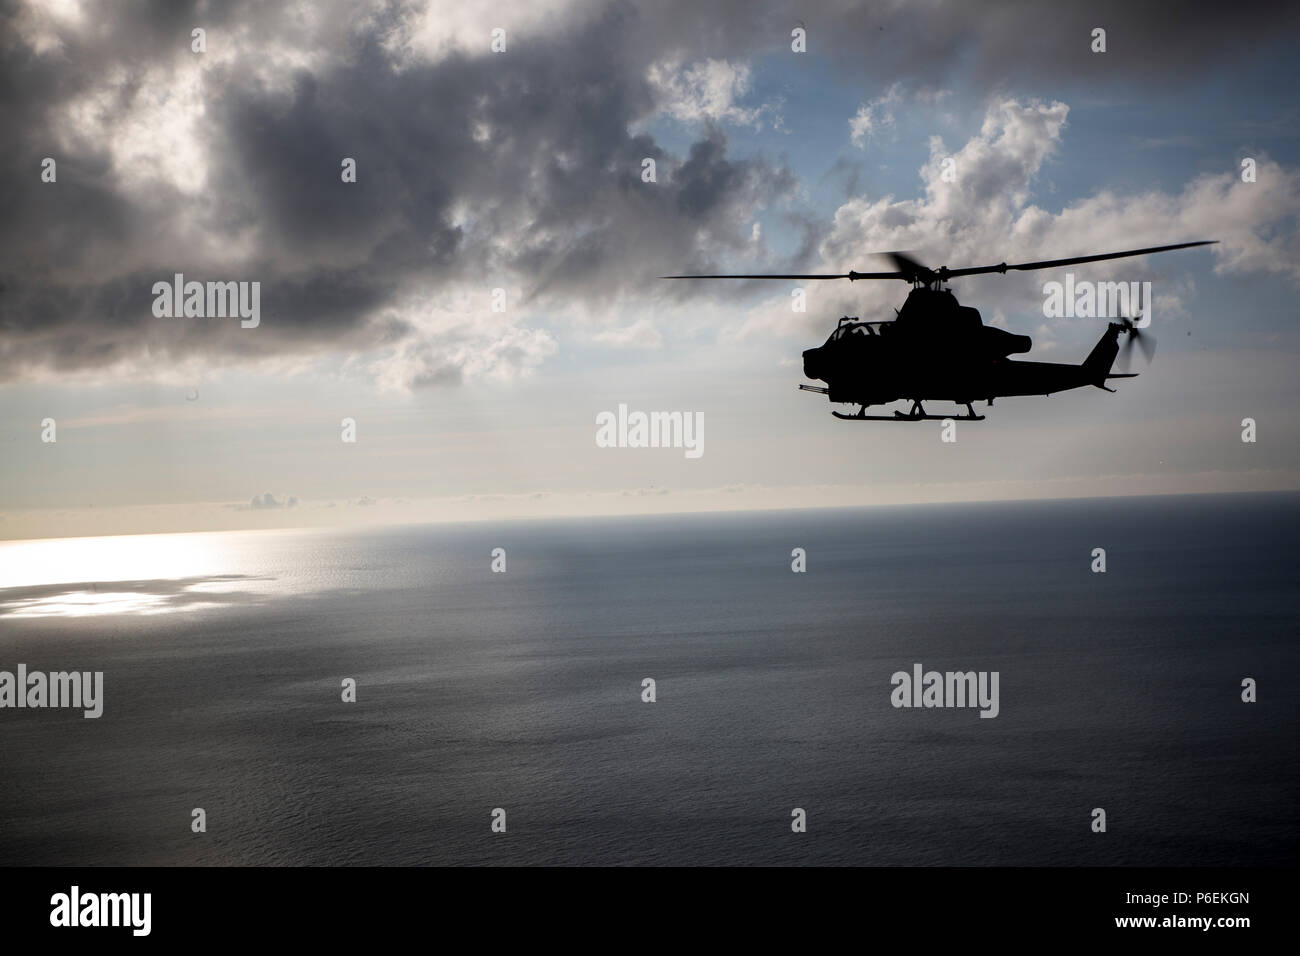 A U.S. Marine Corps AH-1Z Viper helicopter assigned to Marine Light Attack Helicopter Squadron 469, Marine Aircraft Group 39, 3rd Marine Aircraft Wing, under the unit deployment program with MAG-36, 1st MAW flies over Okinawa, Japan, after conducting a live fire event, June 27, 2018. Conducting live fire training is crucial to maintain efficiency and strength. (U.S. Marine Corps photo by Pfc. Ryan Persinger) Stock Photo